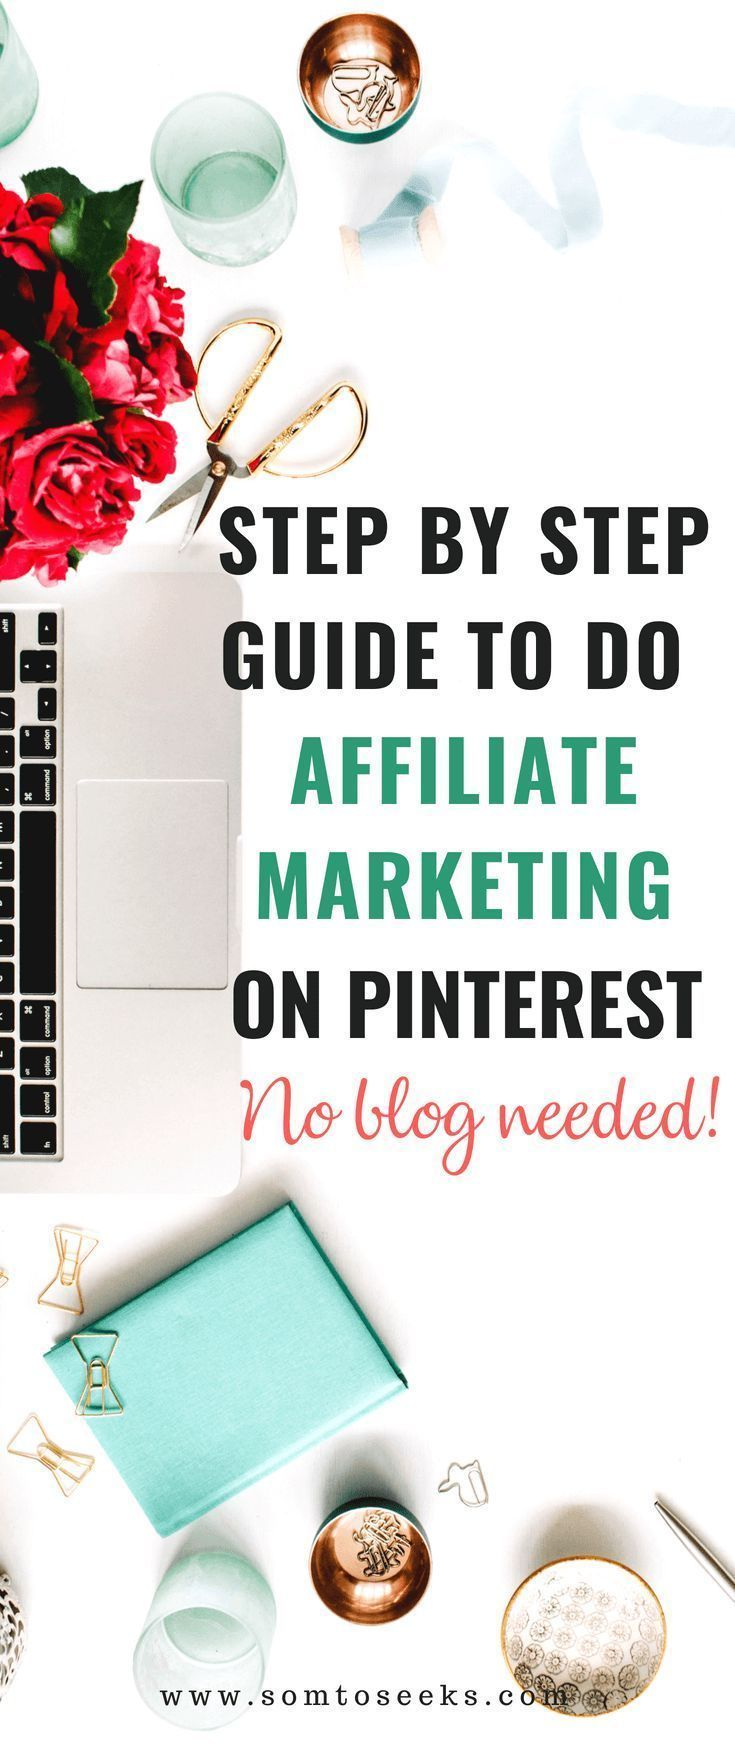 Step by step guide to do affiliate marketing on pinterest